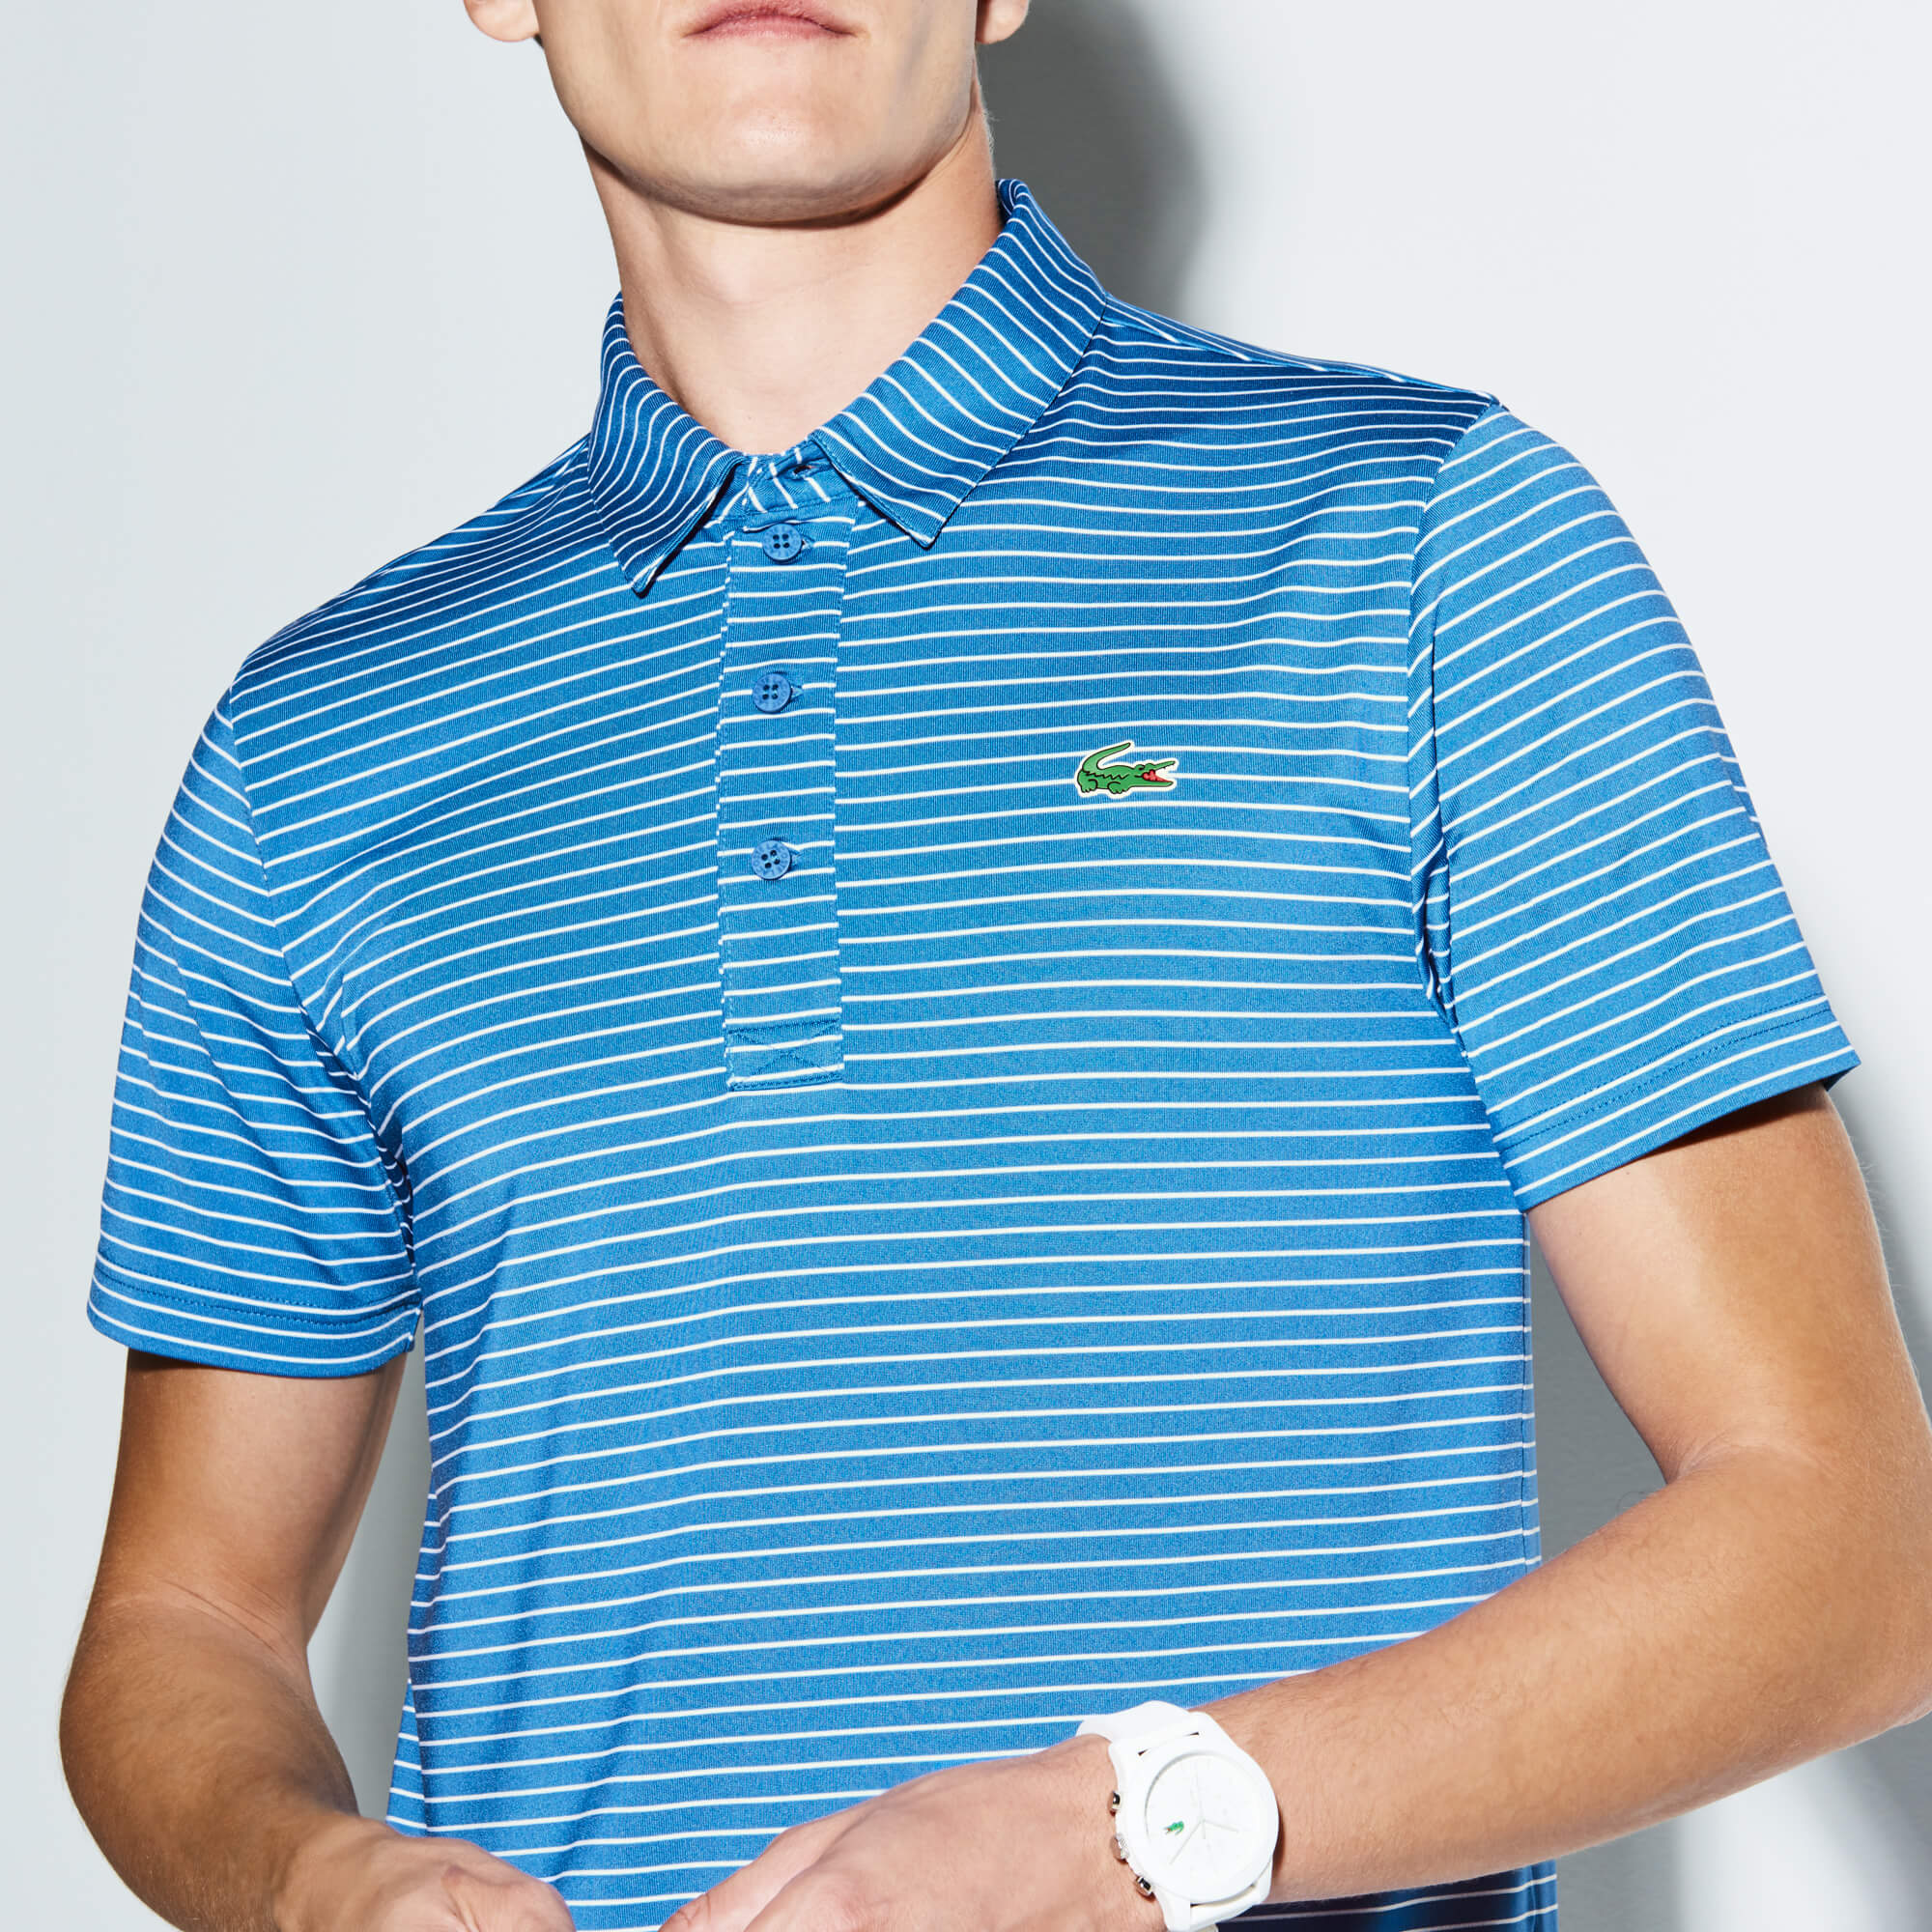 Men's SPORT Striped Stretch Technical Jersey Golf Polo